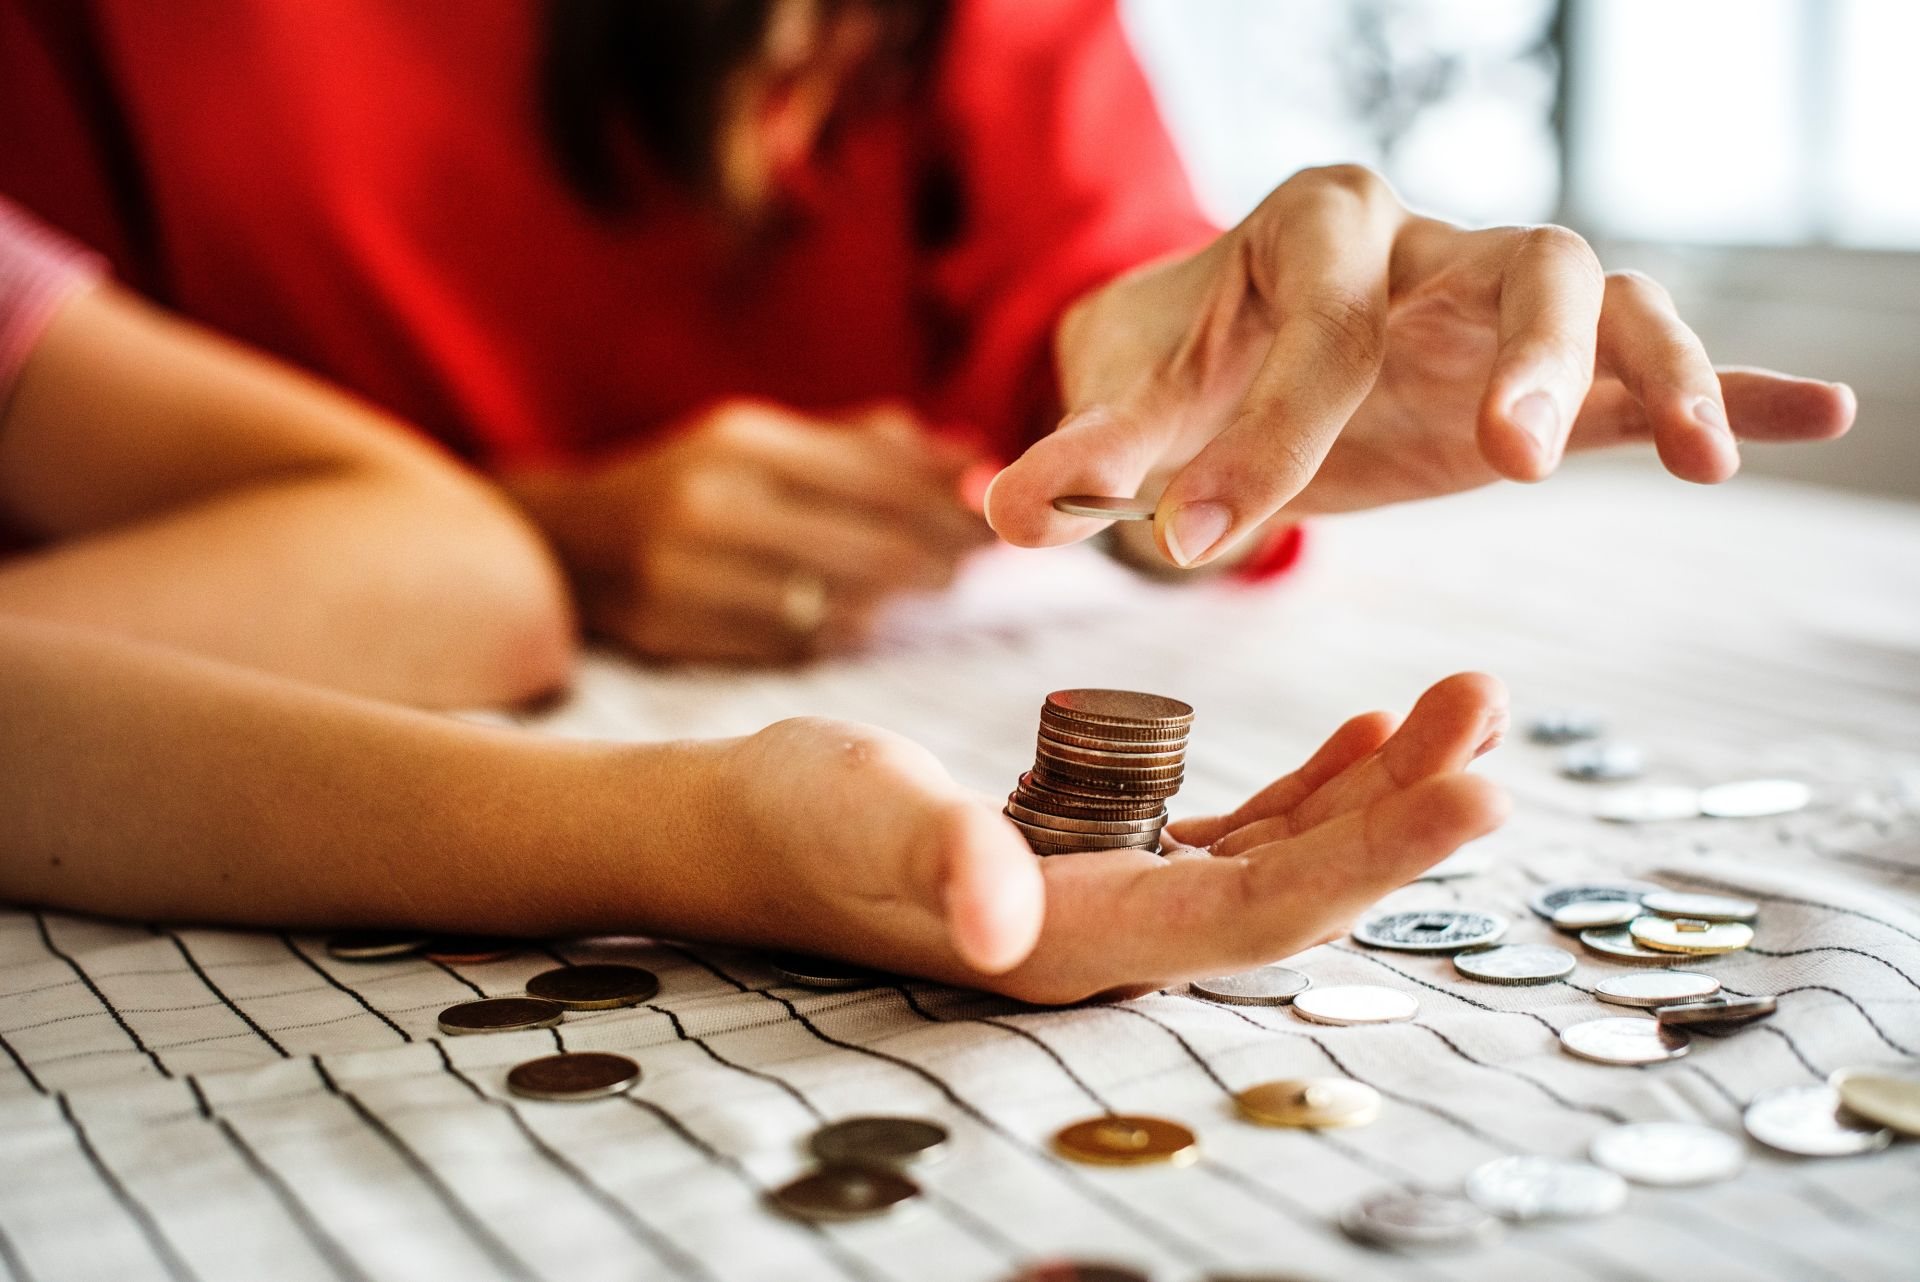 Should I pay down debt before I buy a home?